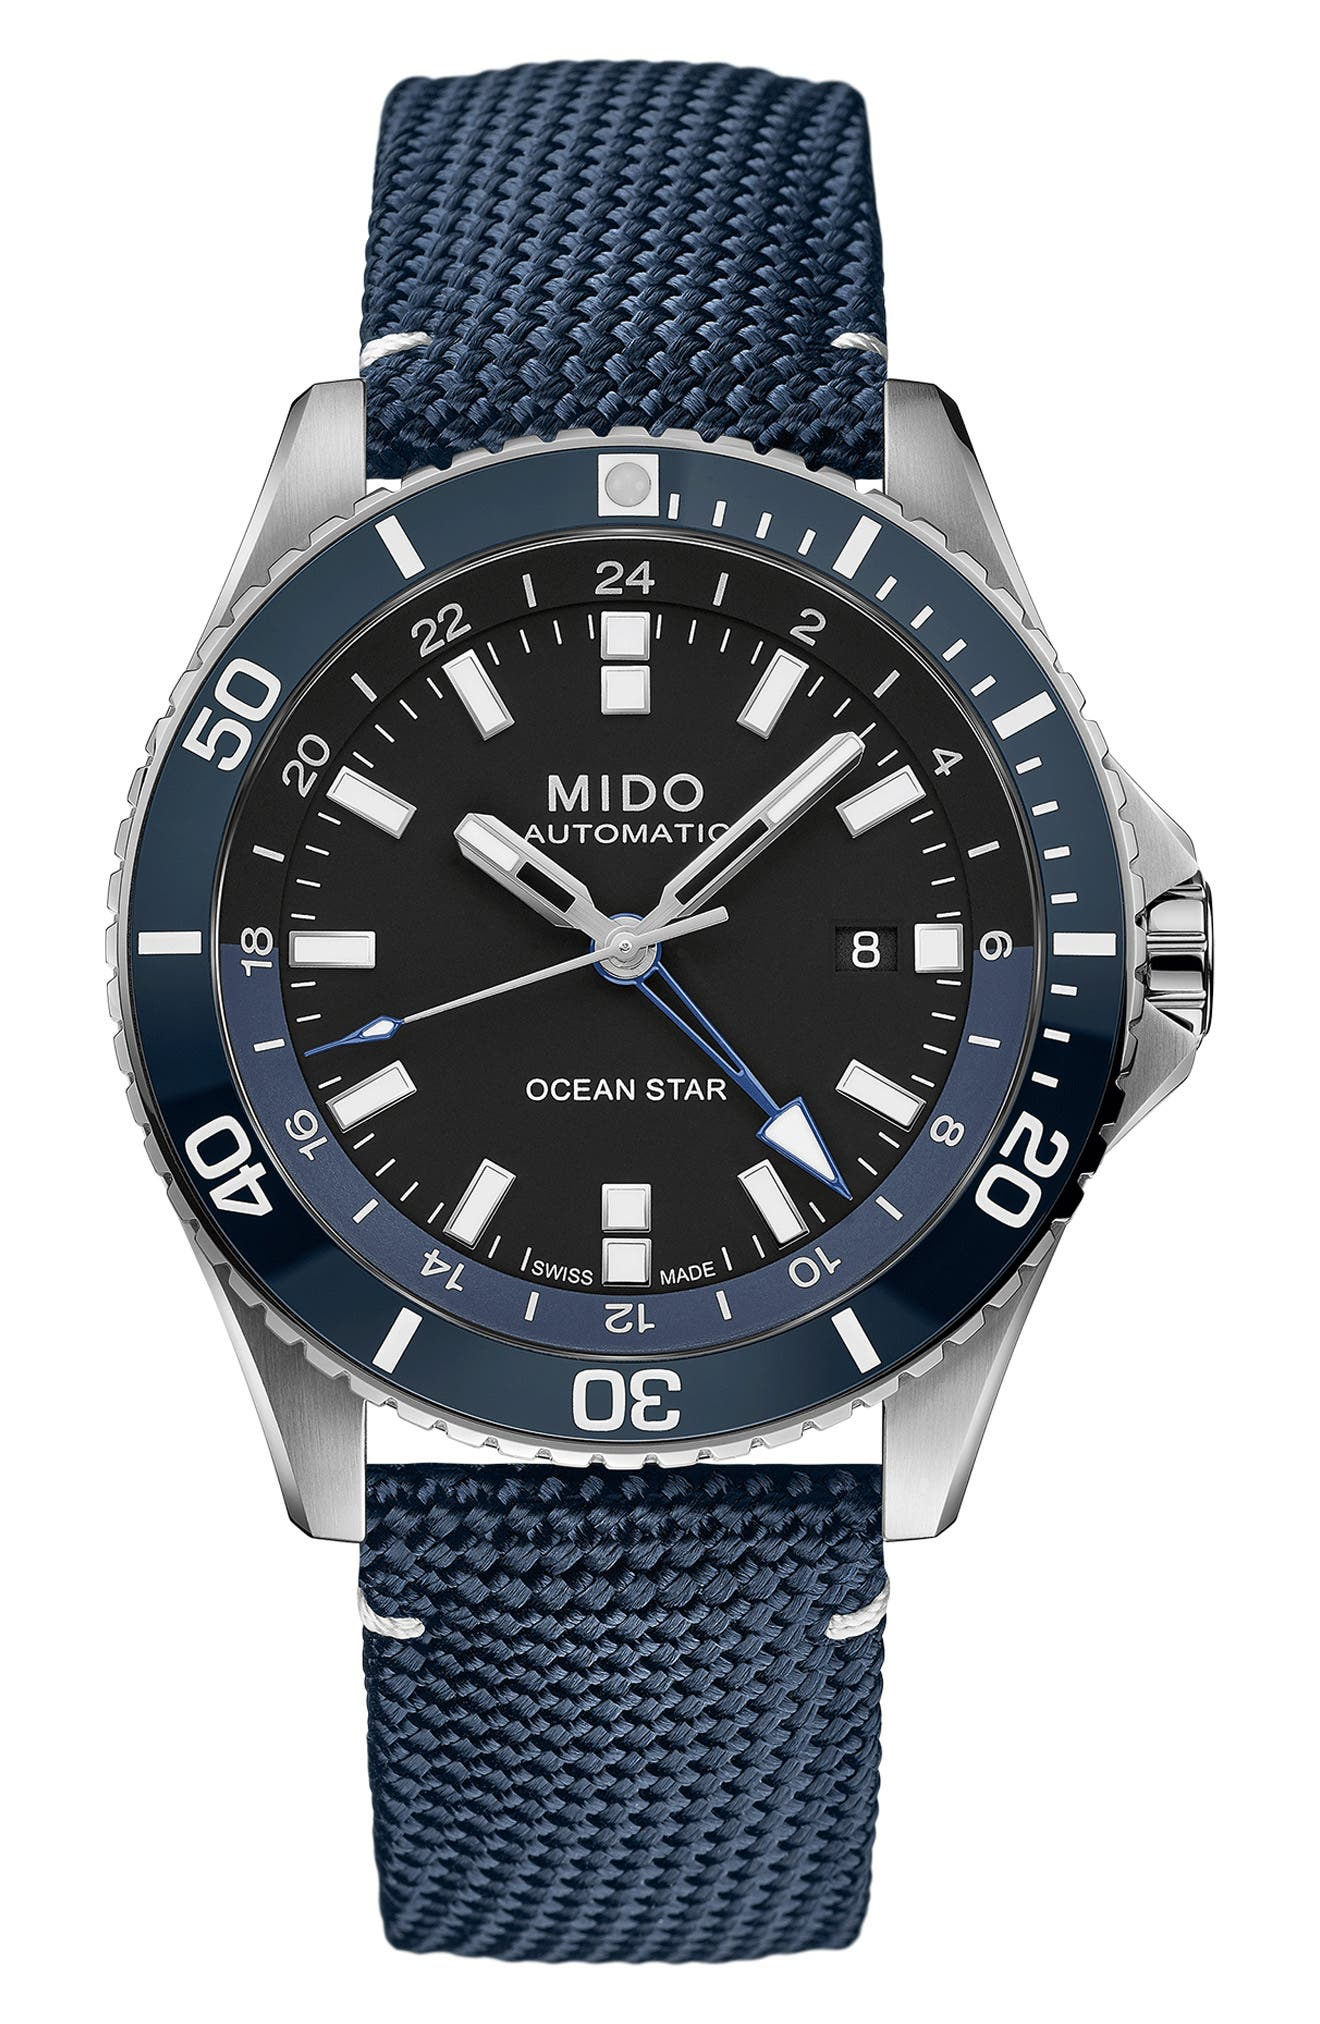 Ocean Star Gmt Automatic Canvas Strap Watch